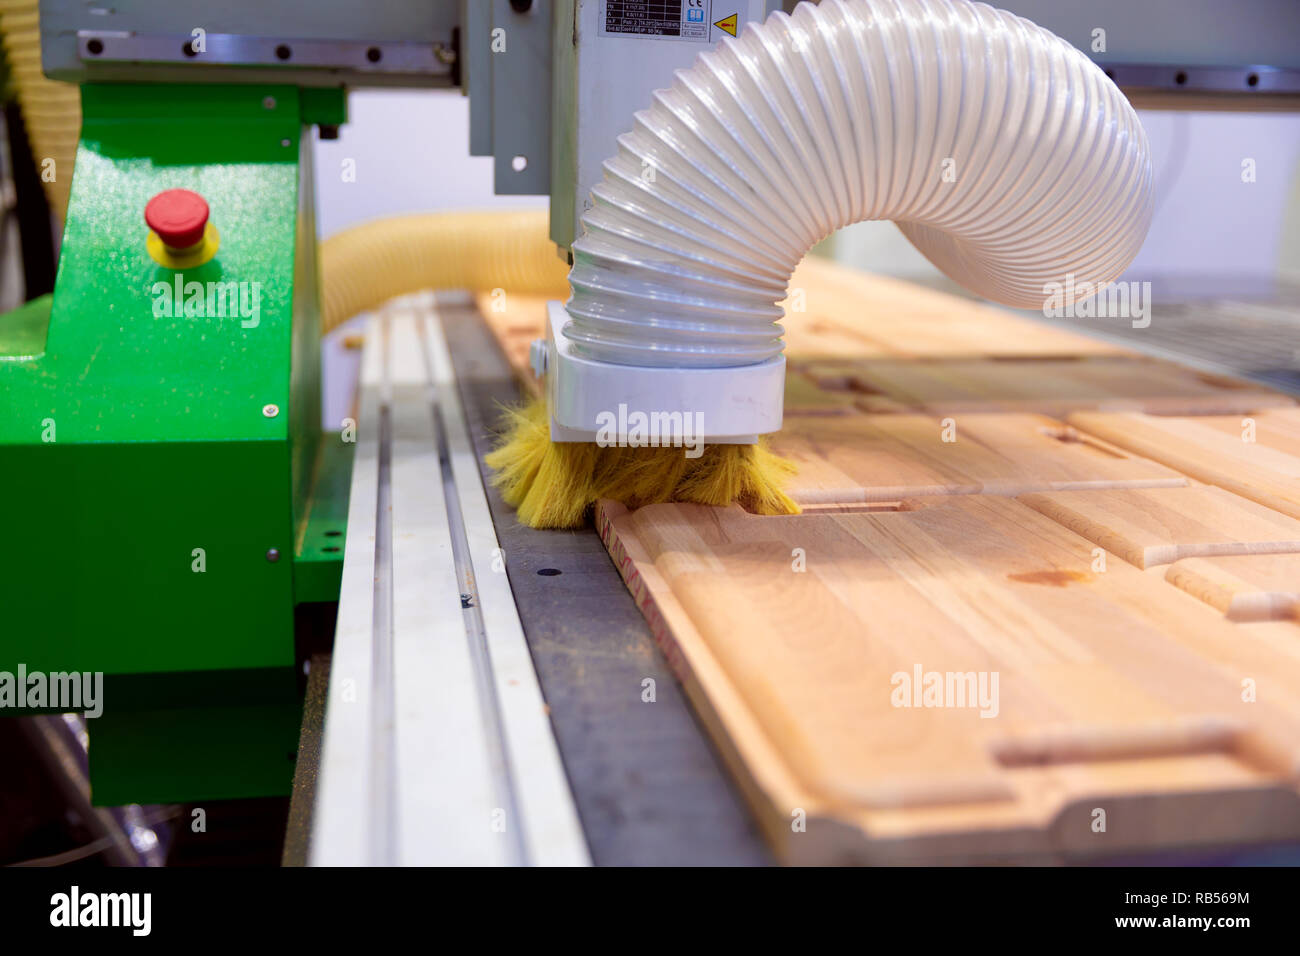 CNC woodworking wood processing machine, modern technology in the industry. - Stock Image